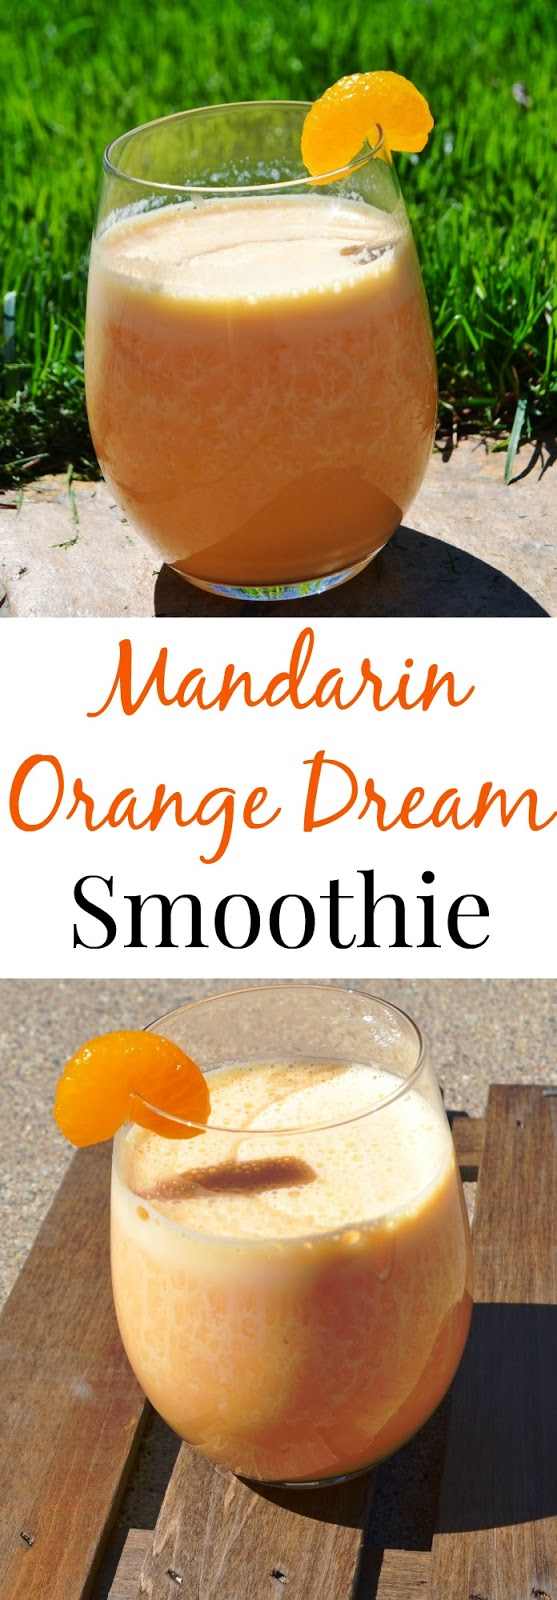 This Mandarin Orange Dream Smoothie takes 2 minutes to make and tastes like dessert but as actually very nutritious! www.nutritionistreviews.com